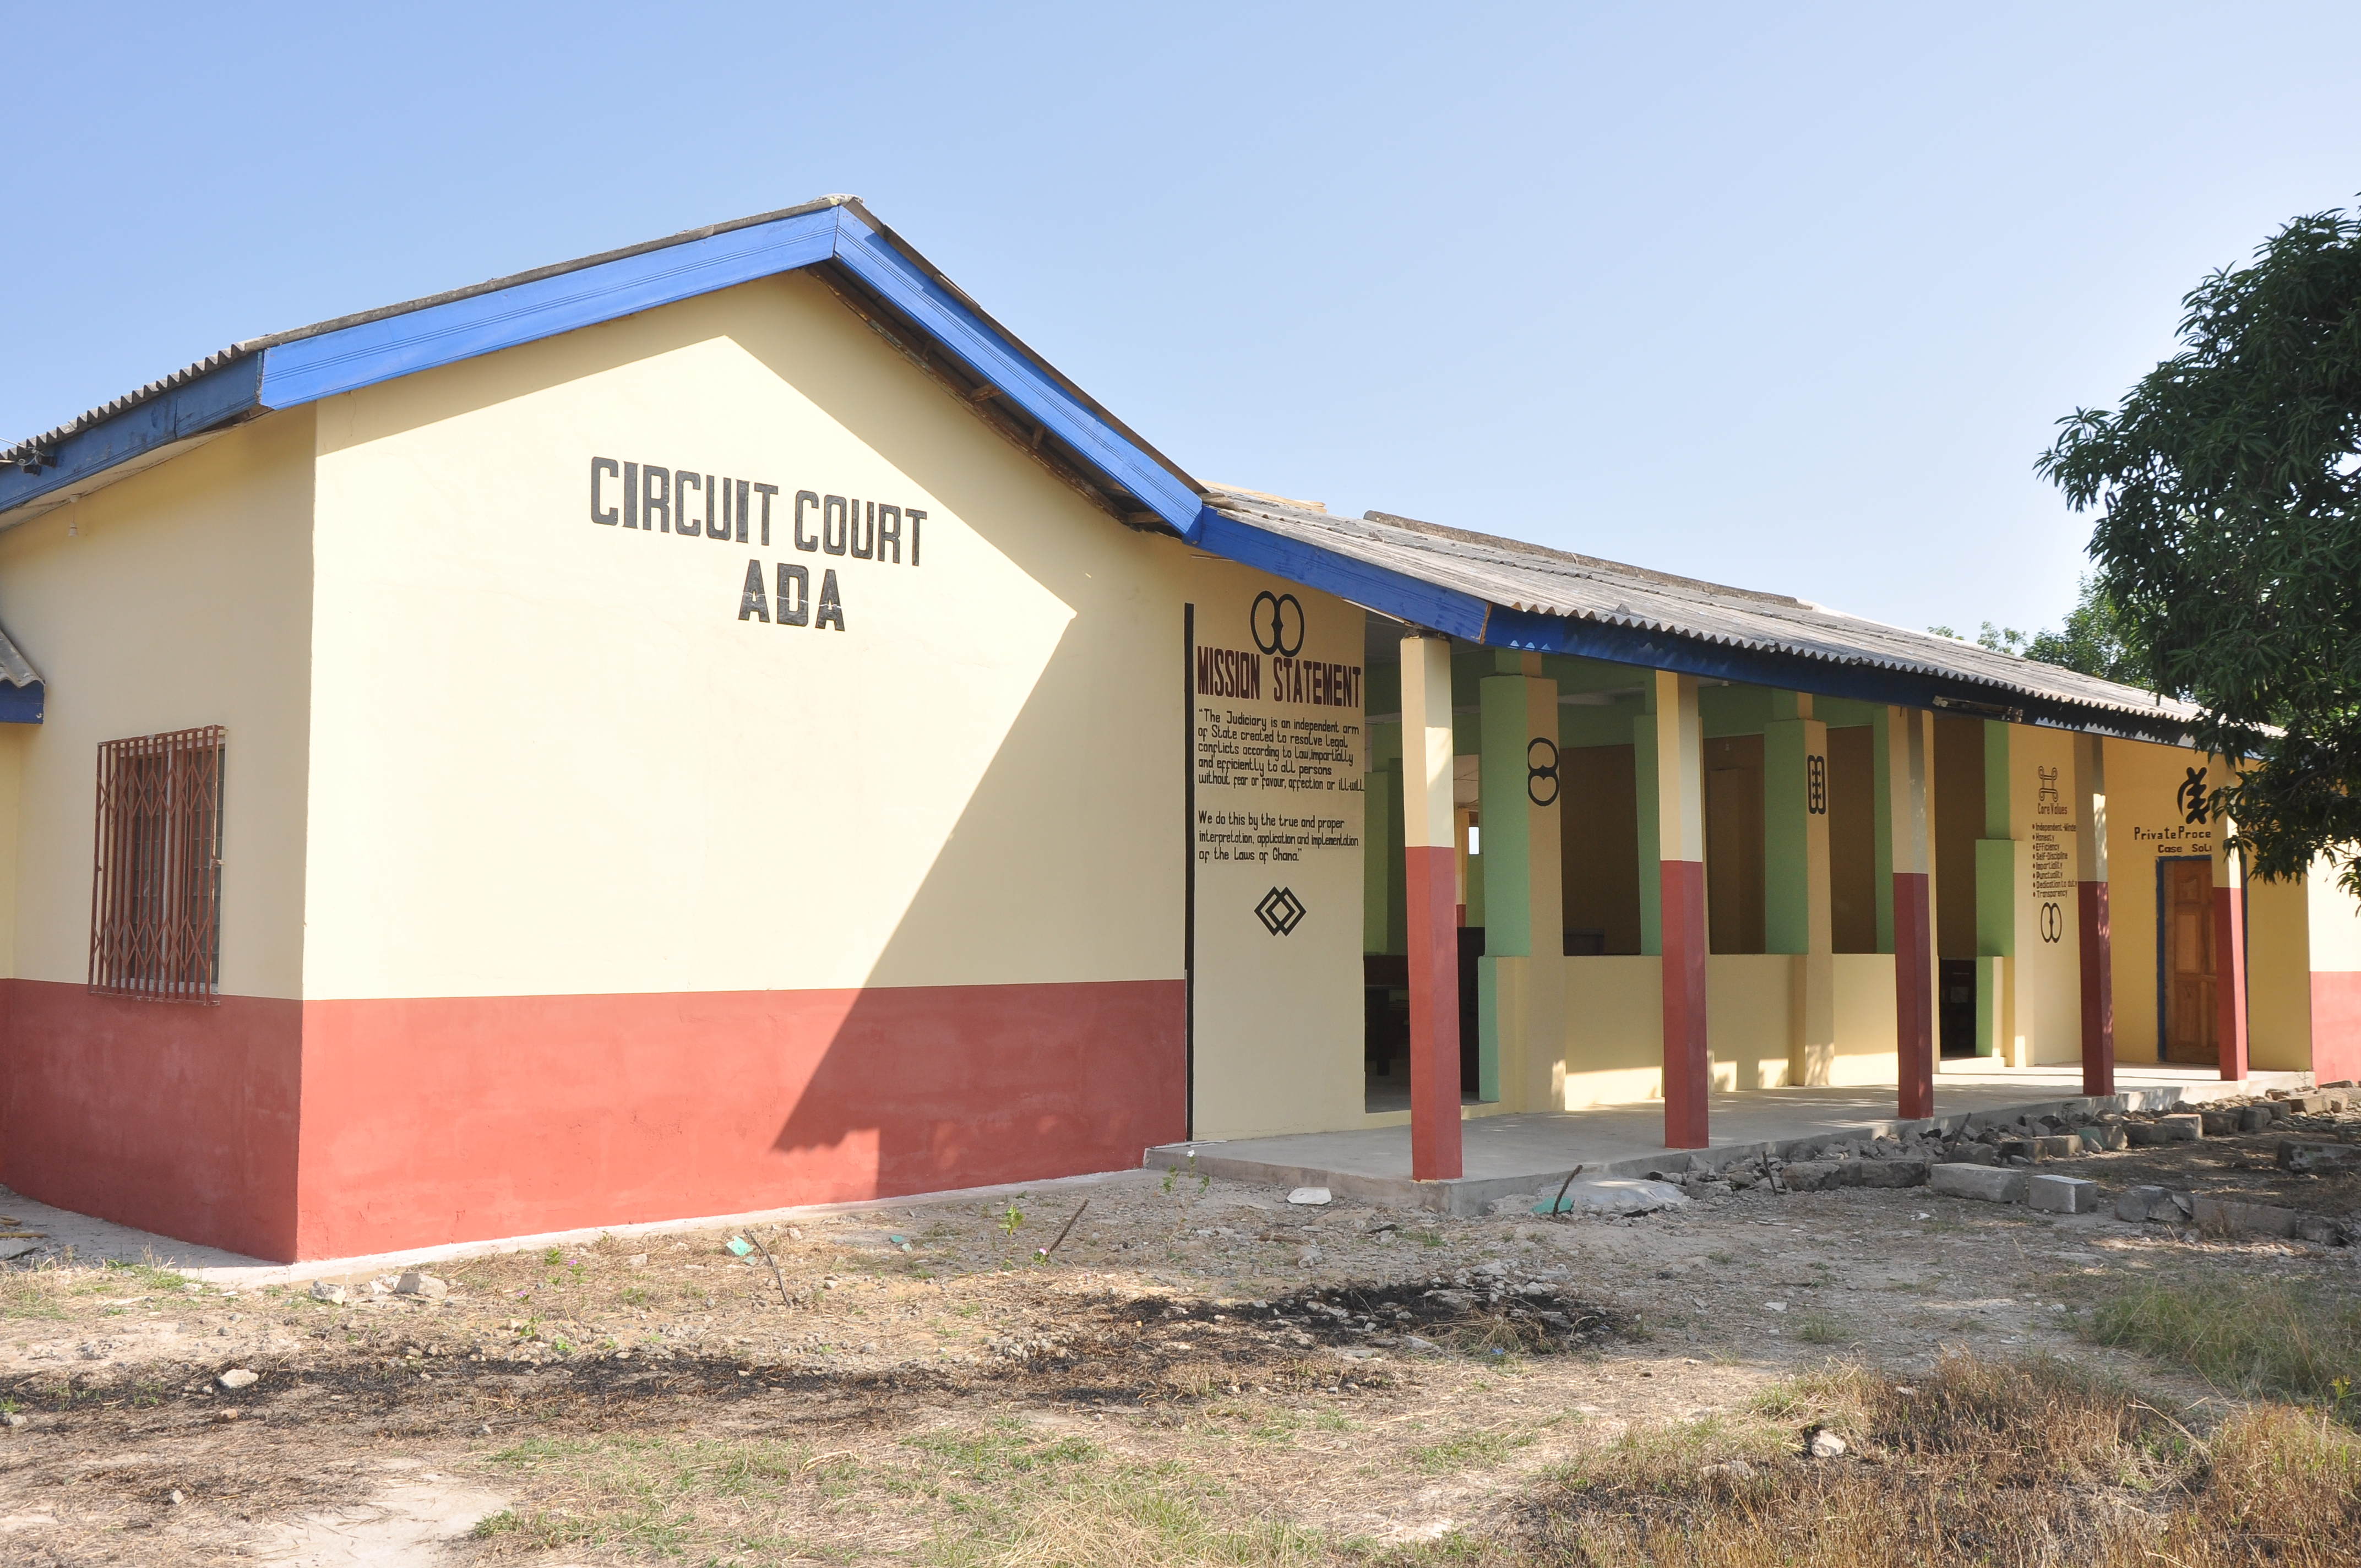 DISTRICT CIRCUIT COURT